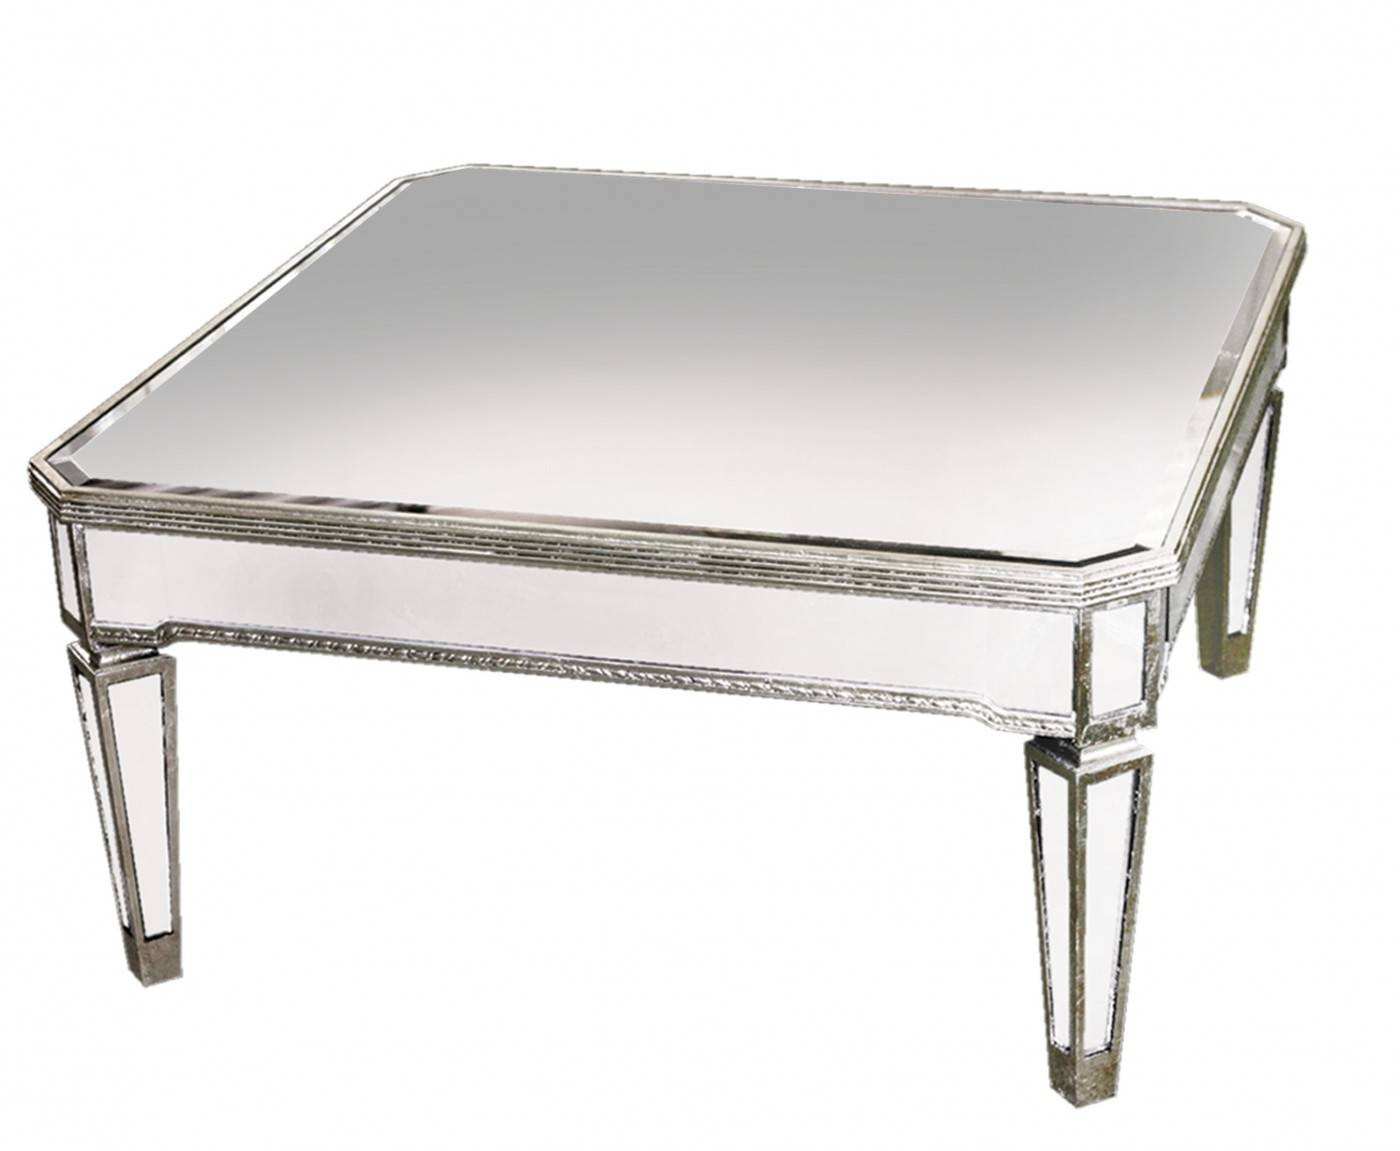 Vintage Mirrored Coffee Table | Coffee Tables Decoration Inside Antique Mirrored Coffee Tables (View 5 of 30)